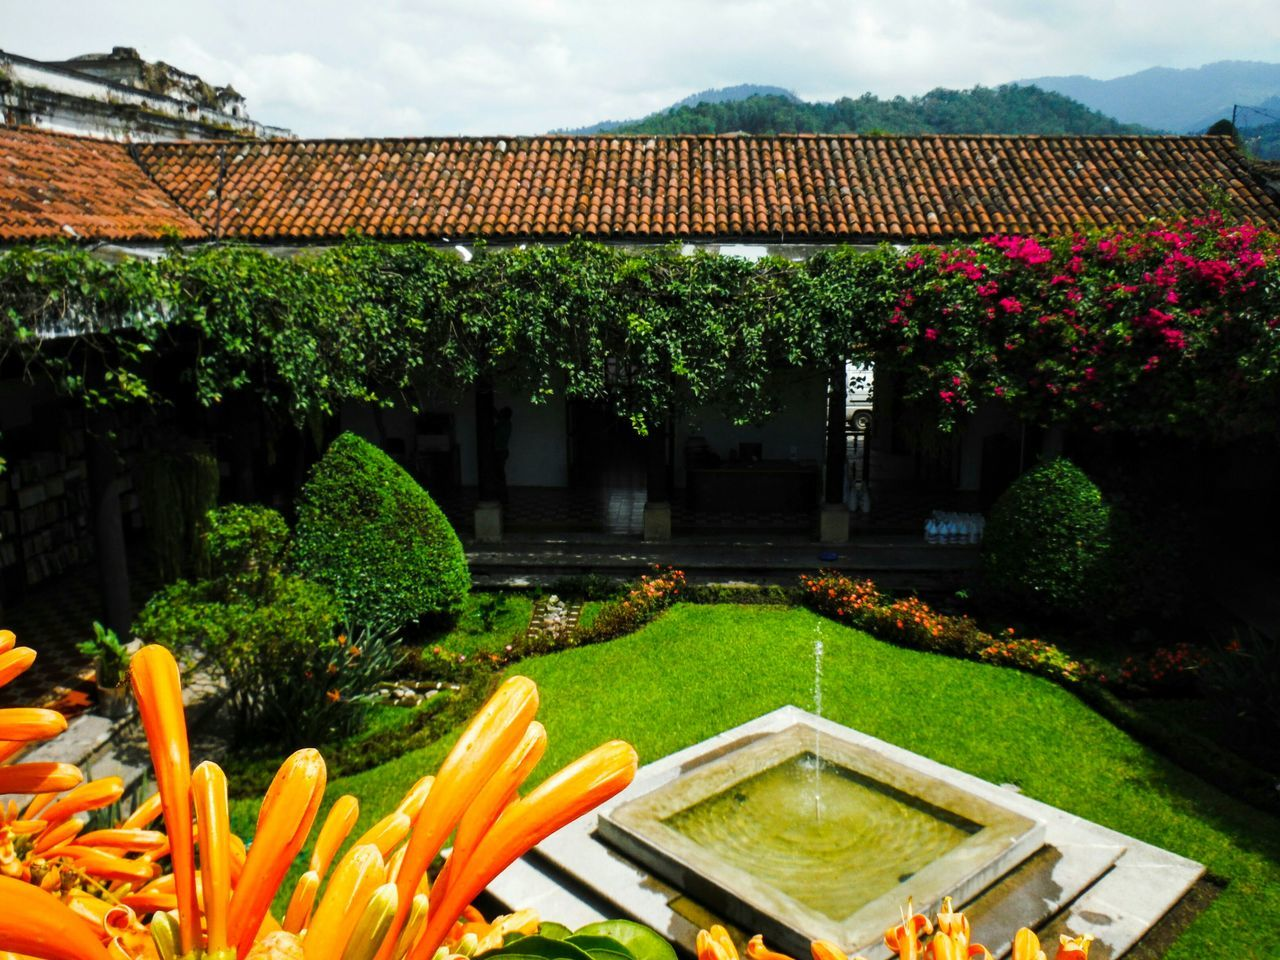 Colonial Colonial Architecture Colonial Style Old Buildings Red Tile Roofs Red Tile Roof Tile Rooftop Rooftop View  Guatemala View Guatemala Antigua Antigua, Guatemala AntiguaGuatemala Antigua Guatemala Plant Growth Tranquility Ornamental Garden Garden Fountain Fountain Plaza Quaint  Peaceful Place Peaceful View